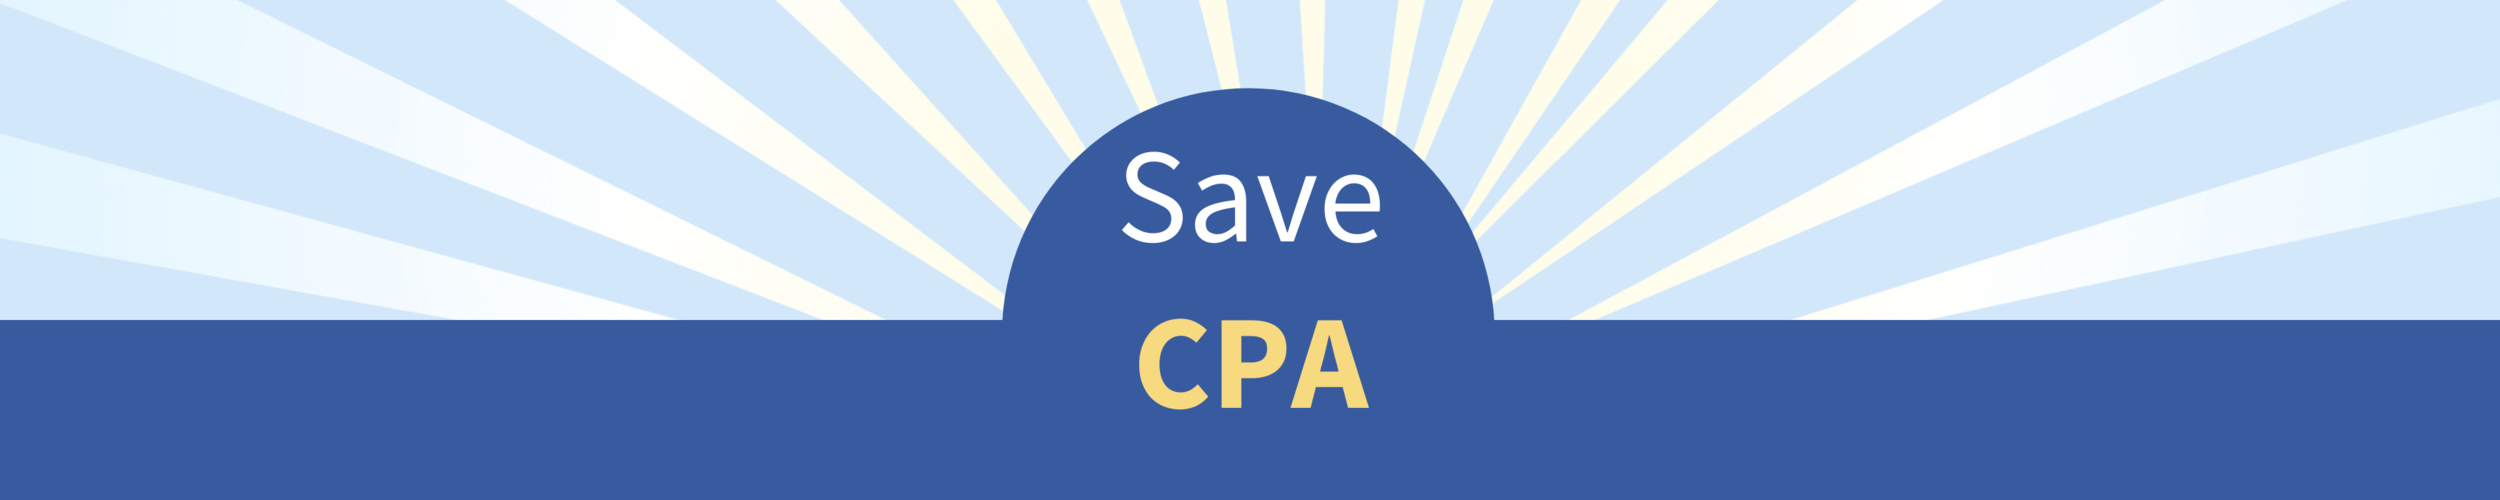 Save CPA Banner - Website 3500 x 700.png